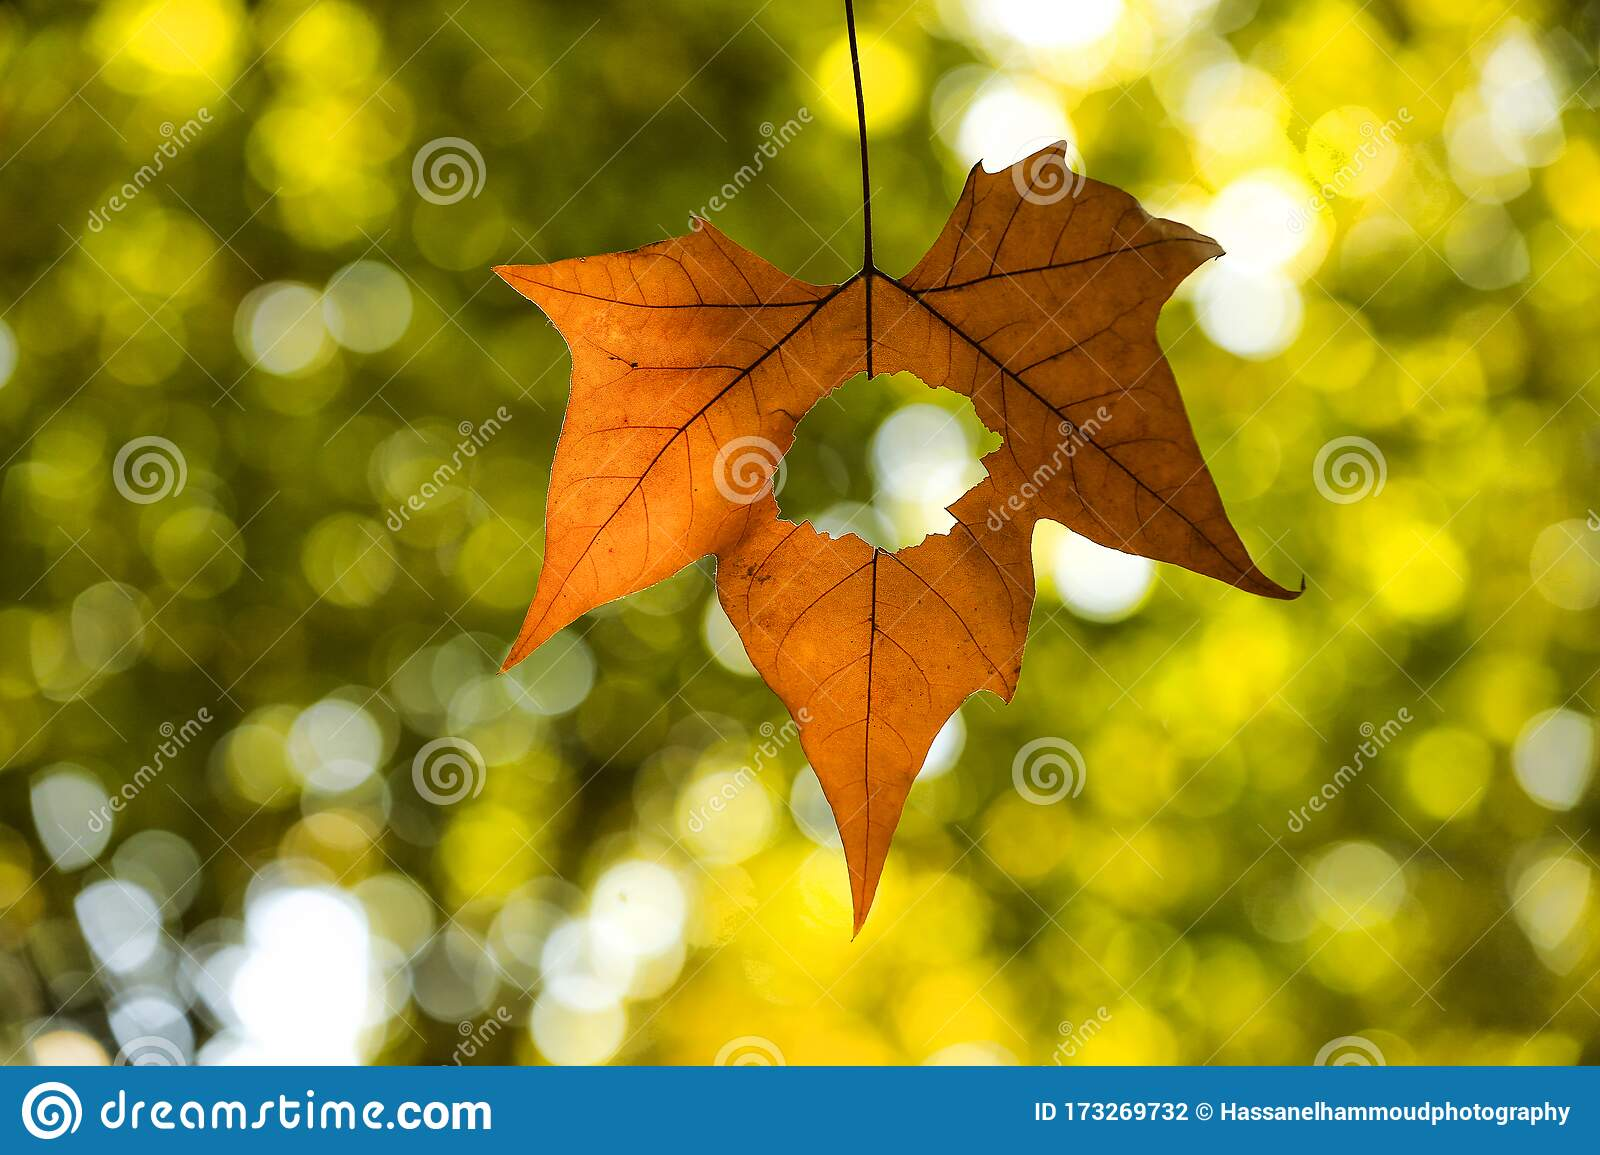 A Golden Yellow Maple Leaf In Autumn Season Stock Photo